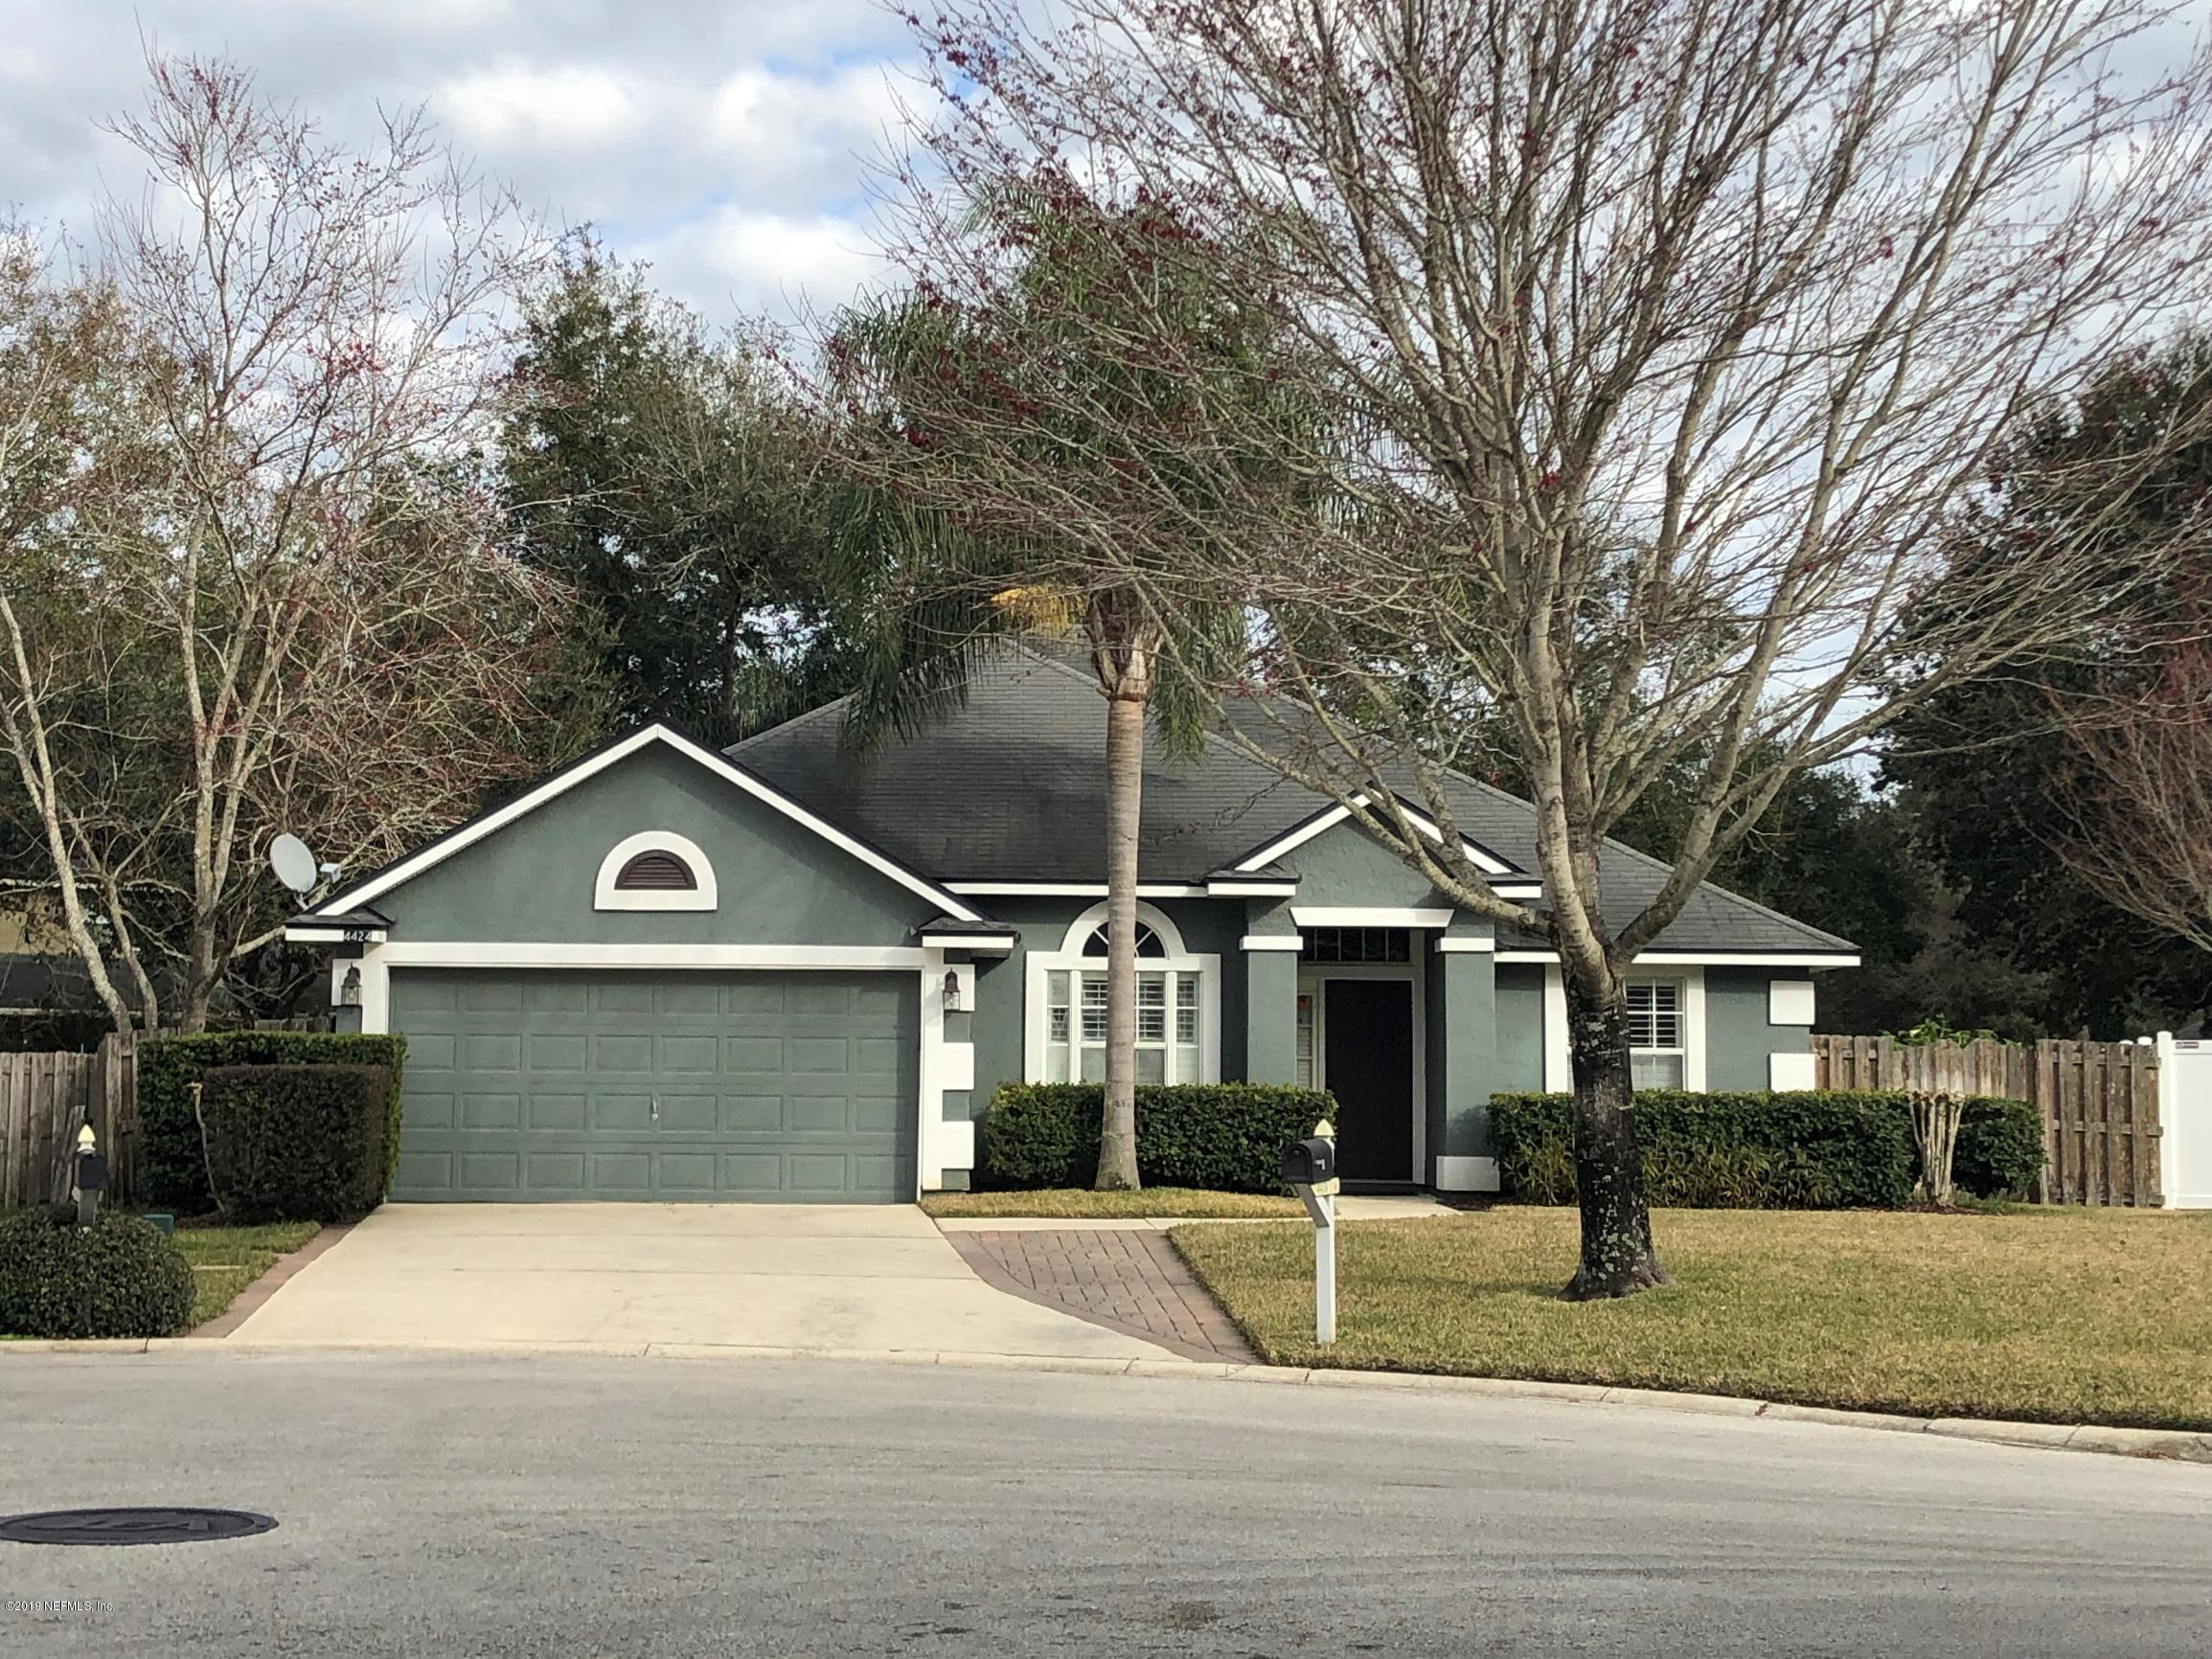 4424 PENNYCRESS, JACKSONVILLE, FLORIDA 32259, 3 Bedrooms Bedrooms, ,2 BathroomsBathrooms,Residential - single family,For sale,PENNYCRESS,977837